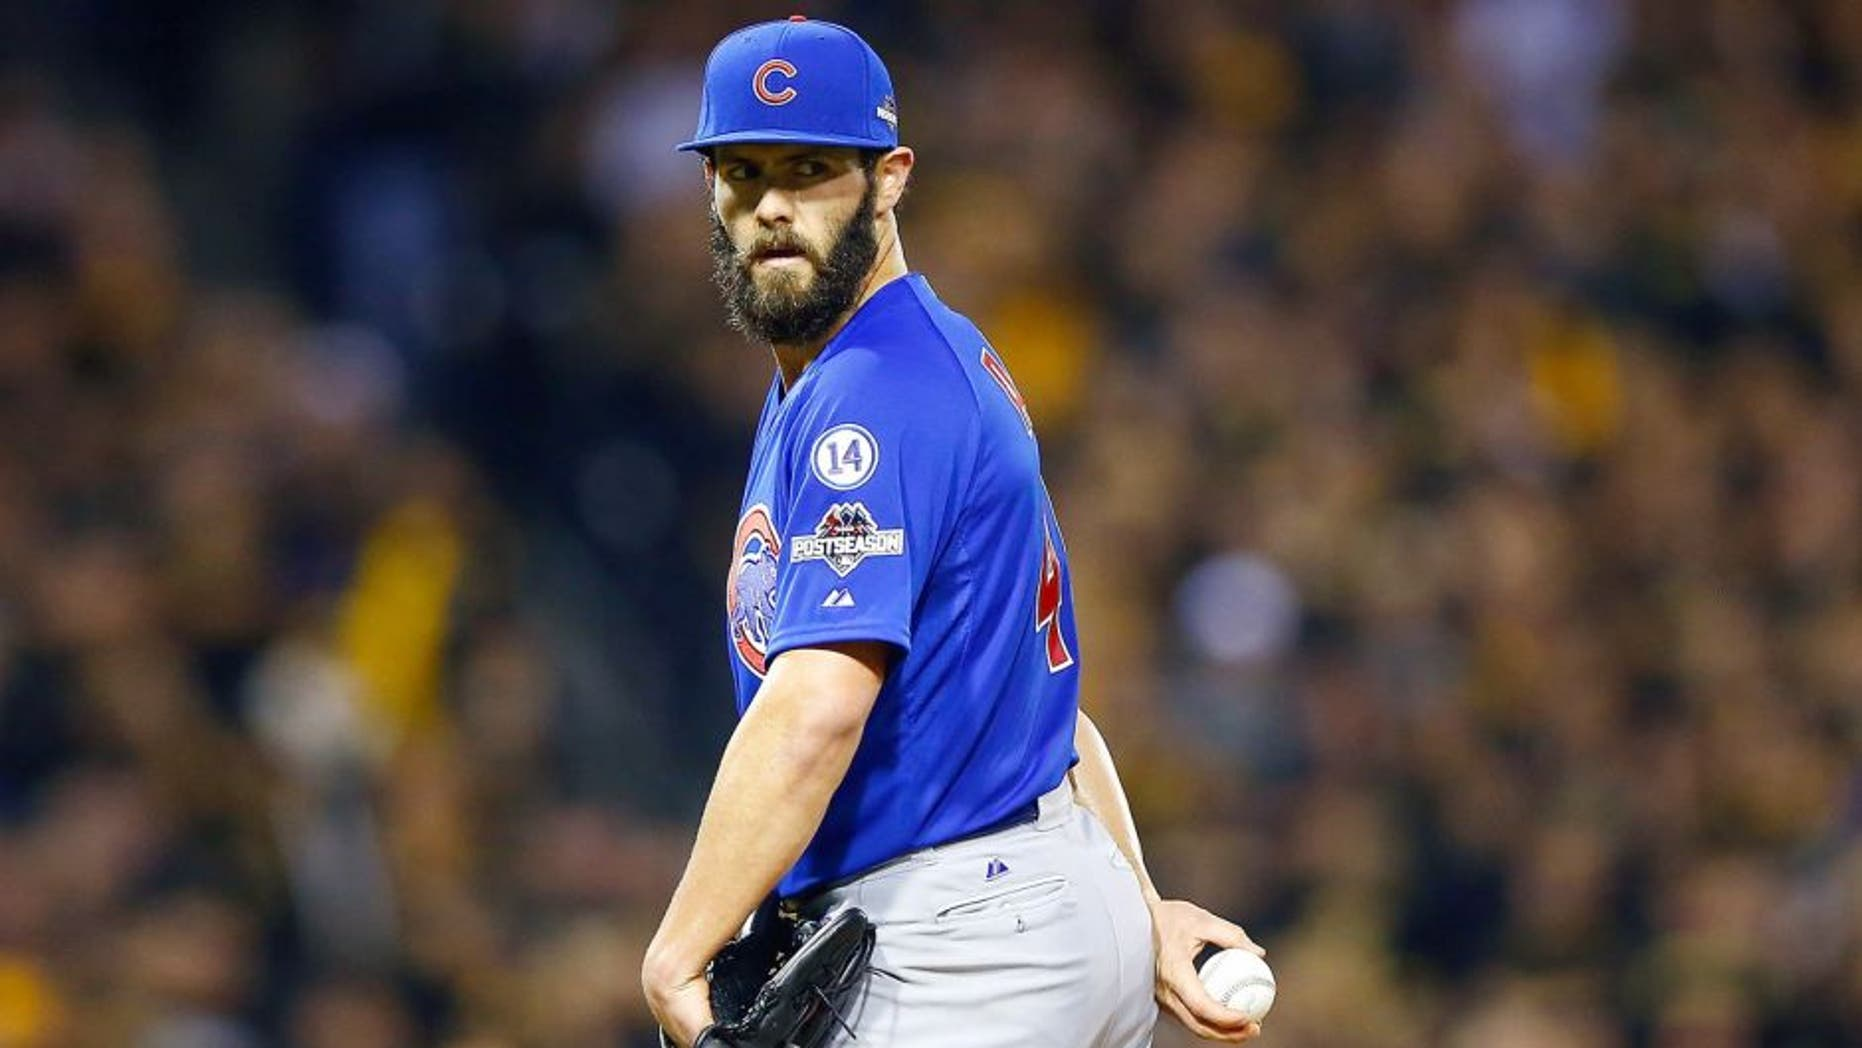 Jake Arrieta #49 of the Chicago Cubs stands on the pitcher's mound in the seventh inning against the Pittsburgh Pirates during the National League Wild Card game at PNC Park on October 7, 2015 in Pittsburgh, Pennsylvania. (Photo by Jared Wickerham/Getty Images)